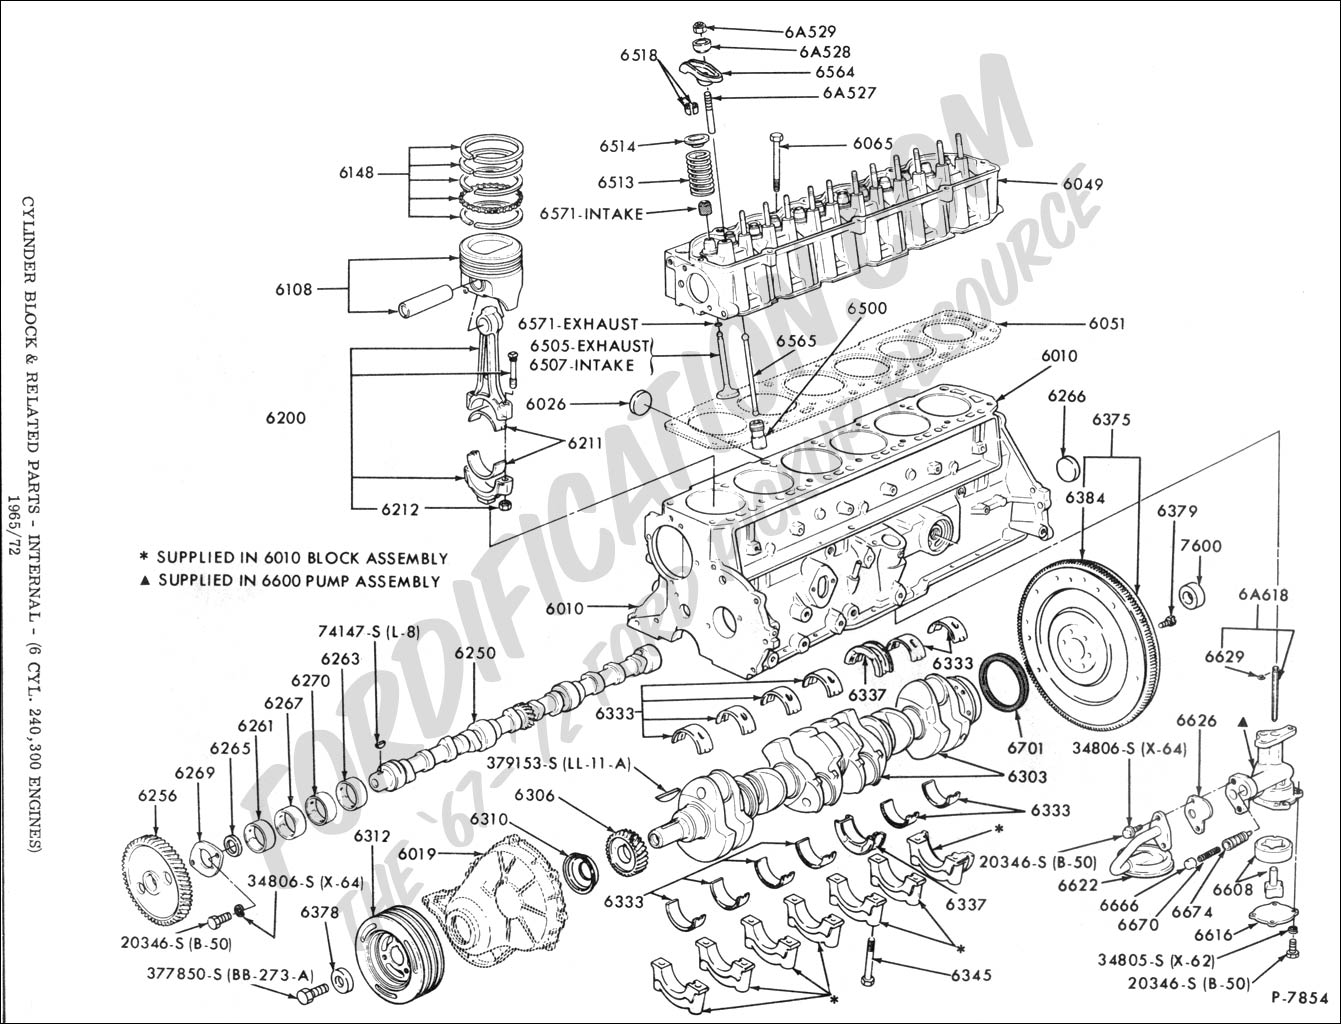 specs ford 289 engine diagram ford truck technical drawings and schematics section e engine  ford truck technical drawings and